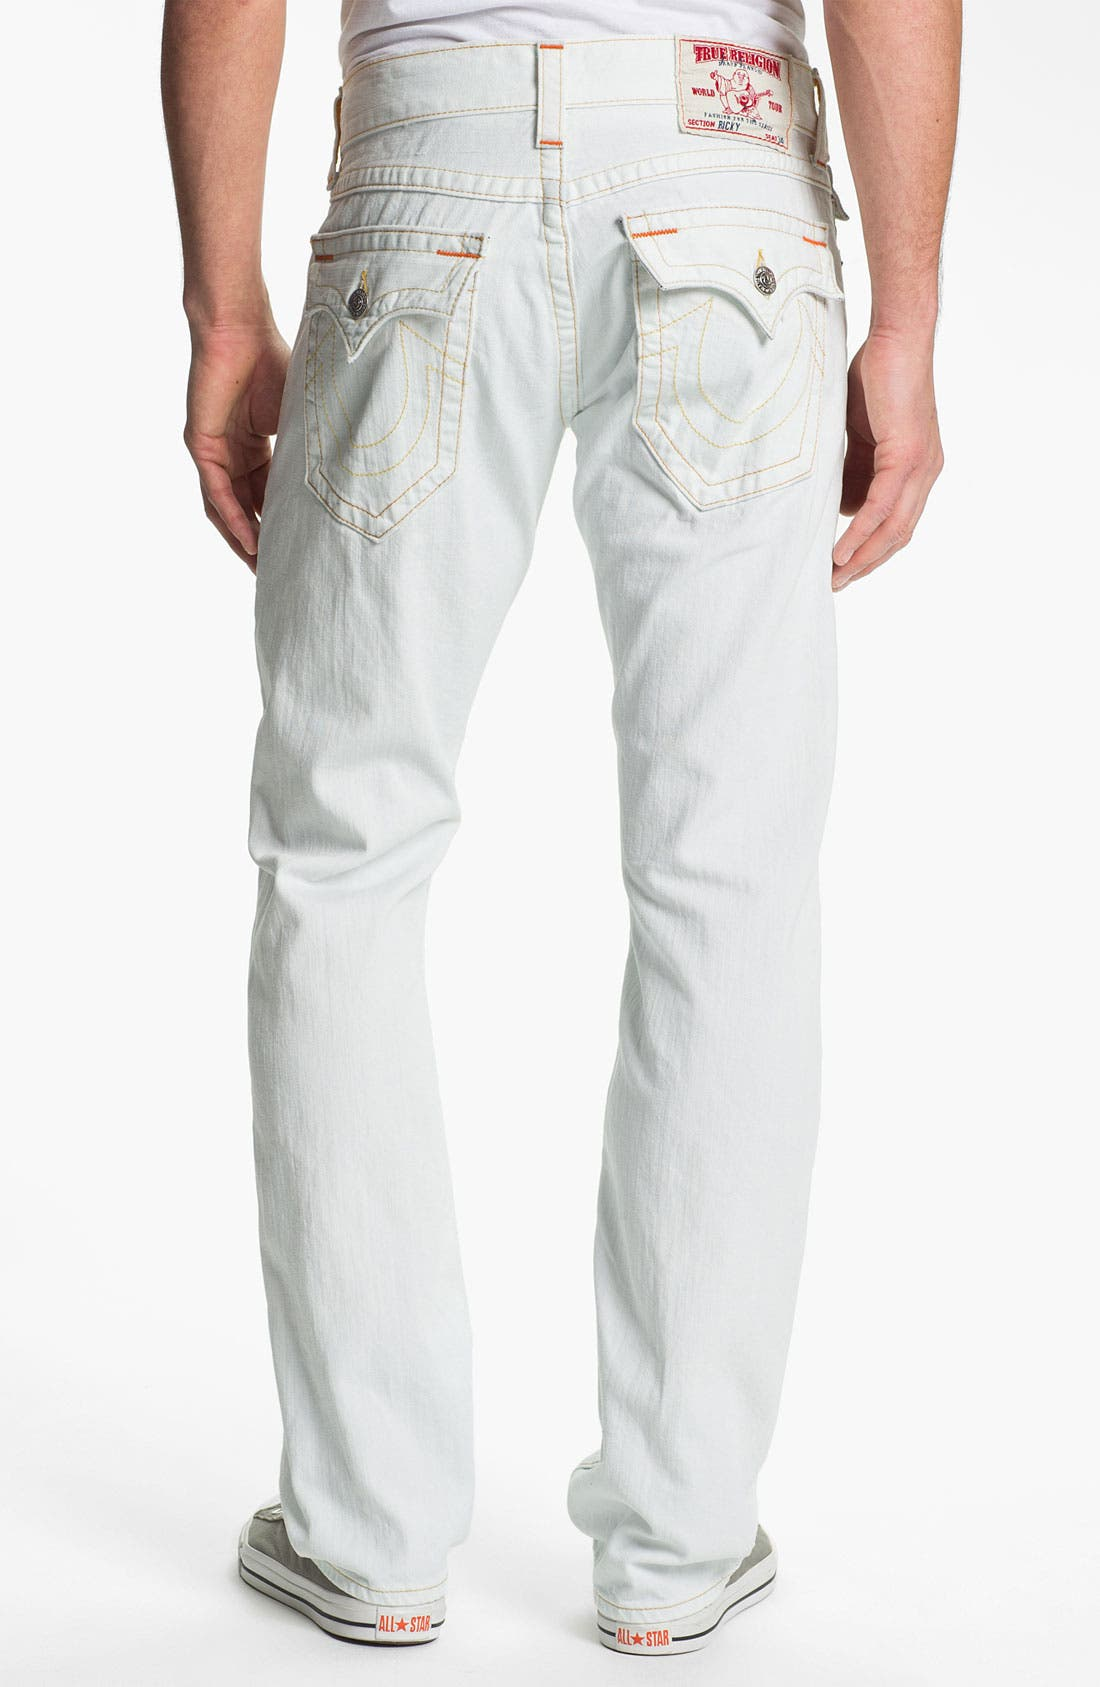 Main Image - True Religion Brand Jeans 'Ricky' Straight Leg Jeans (Bleached) (Online Exclusive)